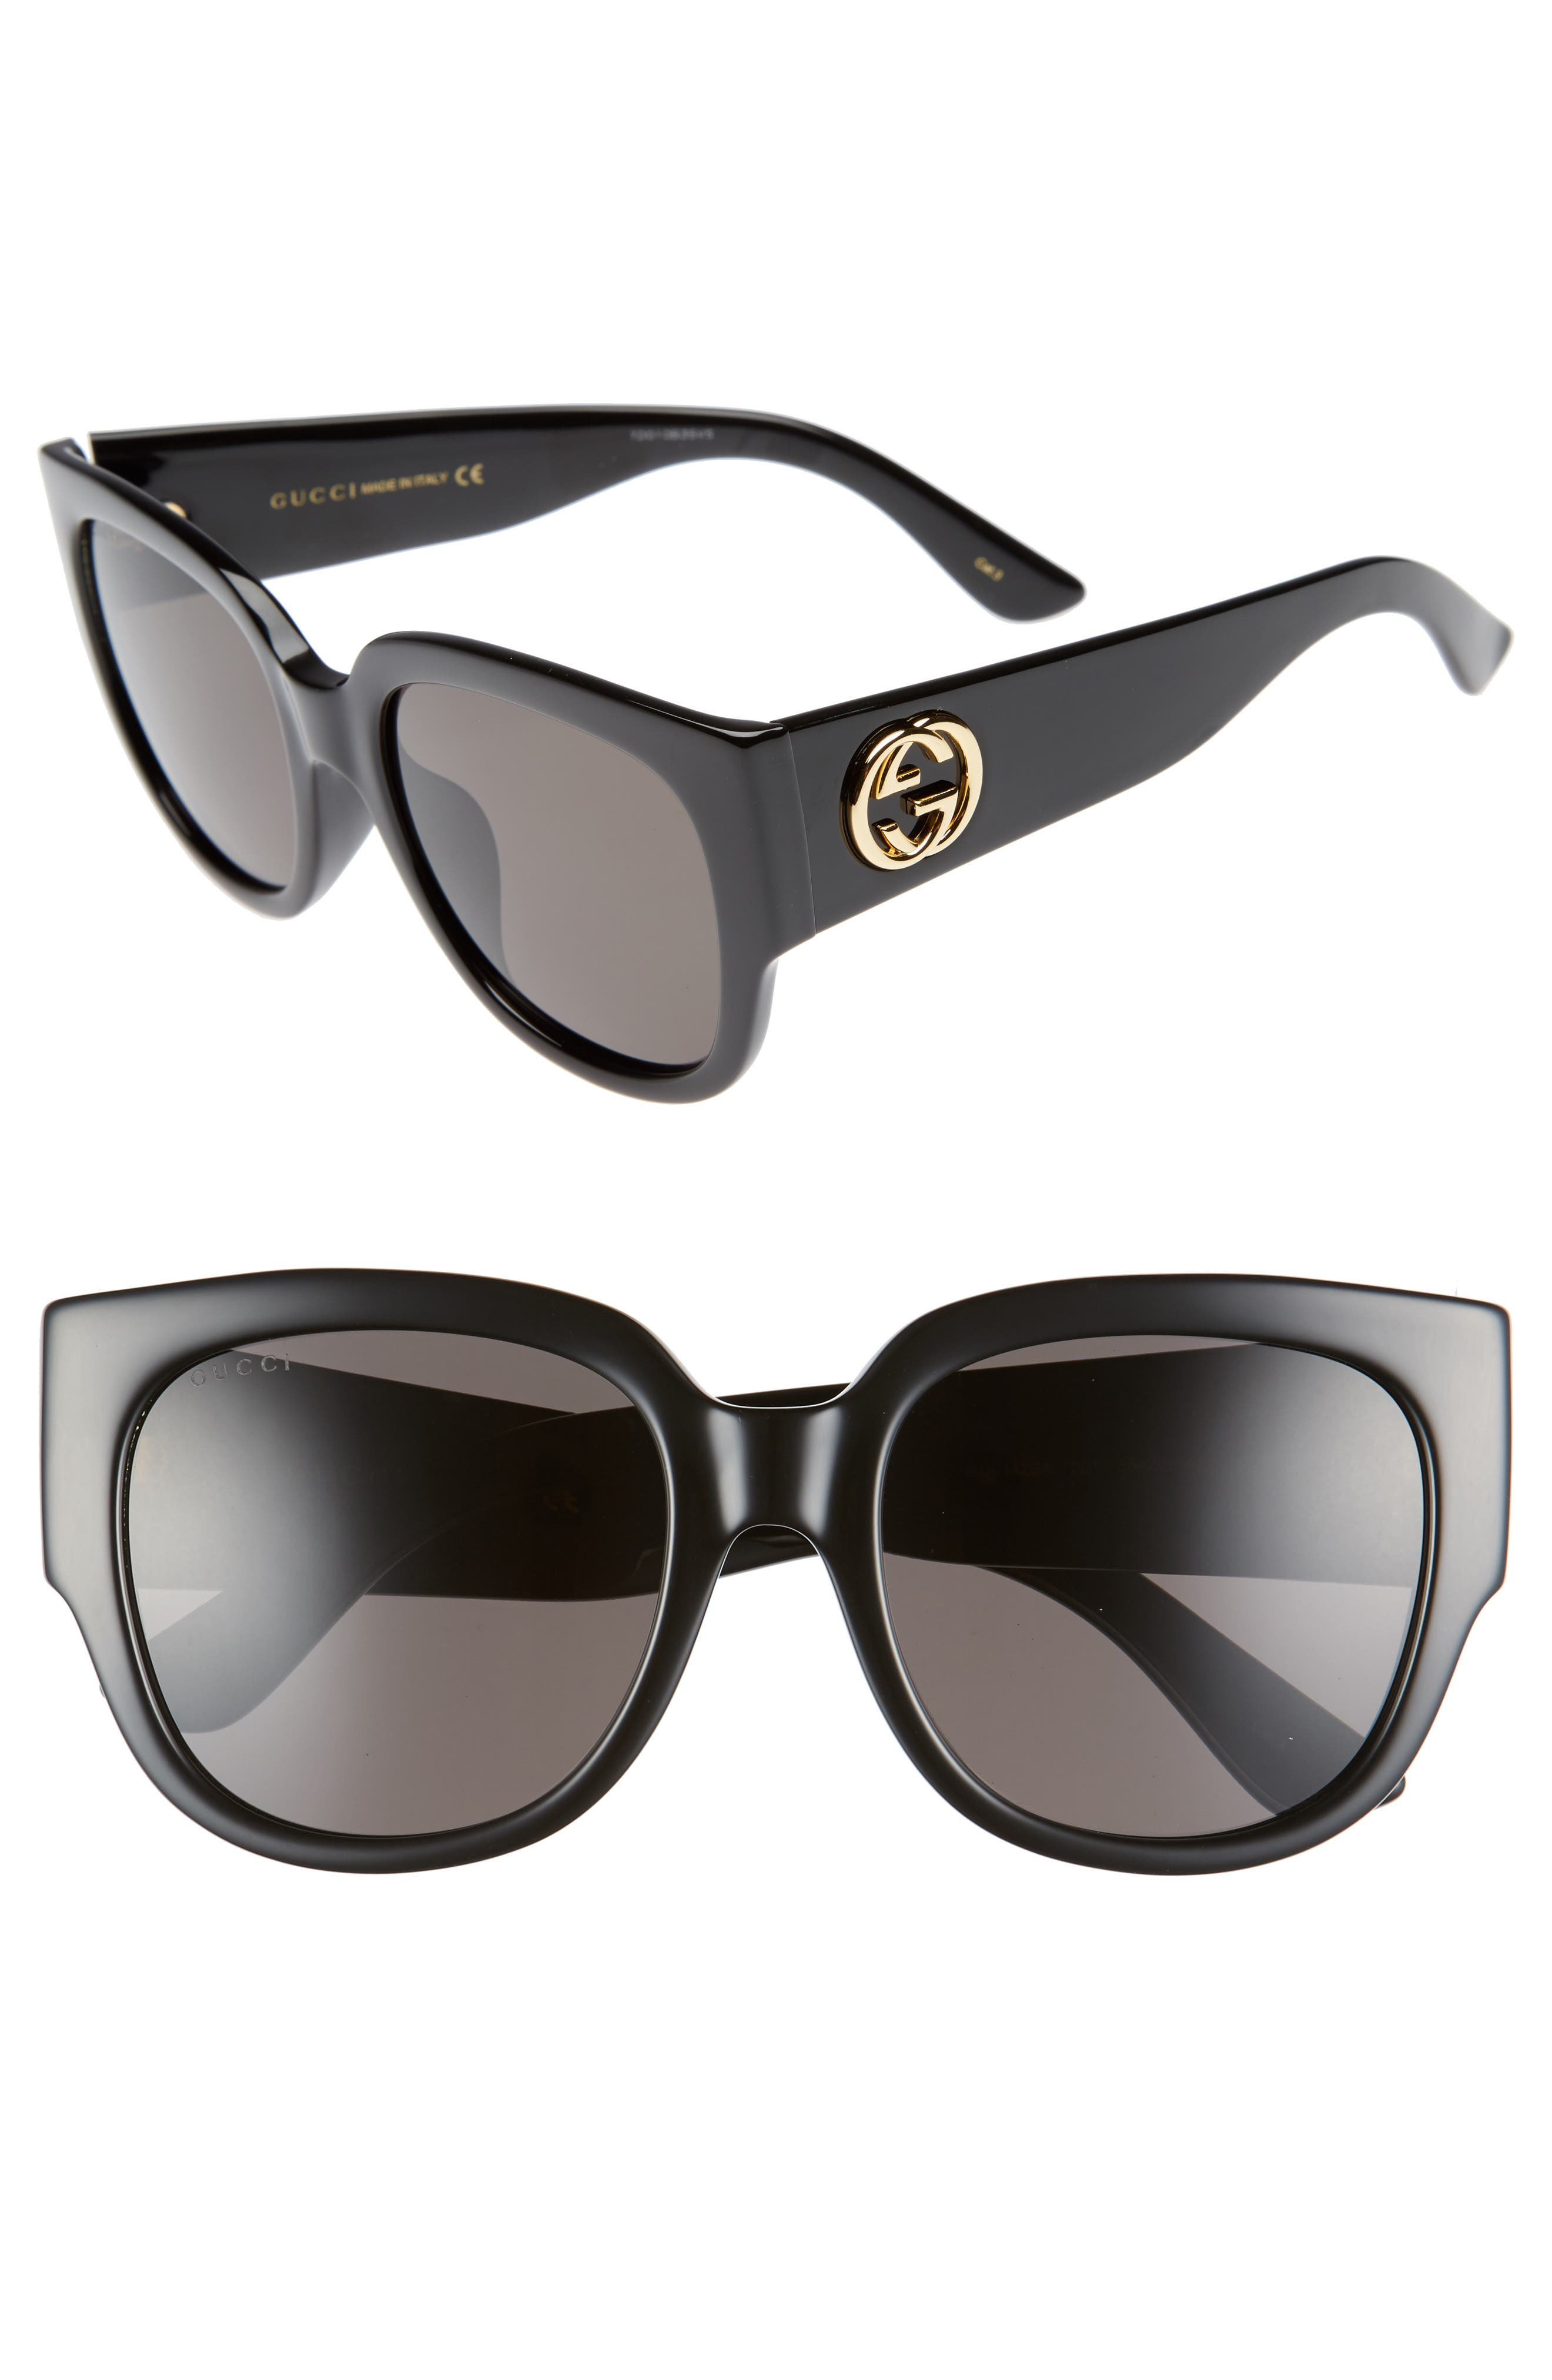 Alternate Image 1 Selected - Gucci 55mm Square Cat Eye Sunglasses